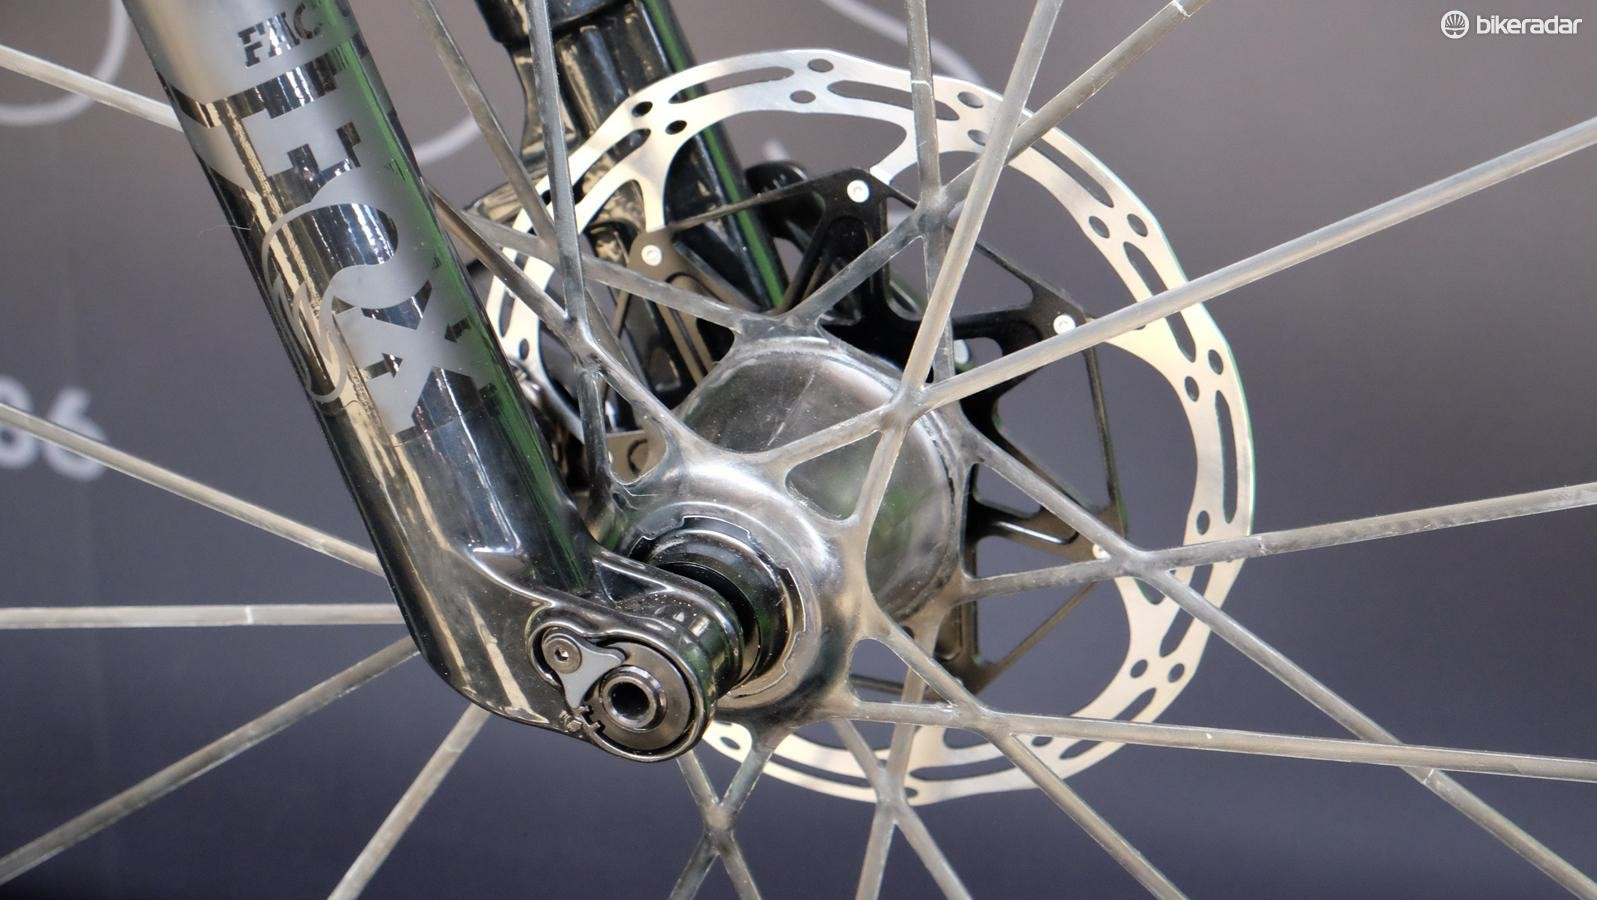 The spokes are molded into a solid structure